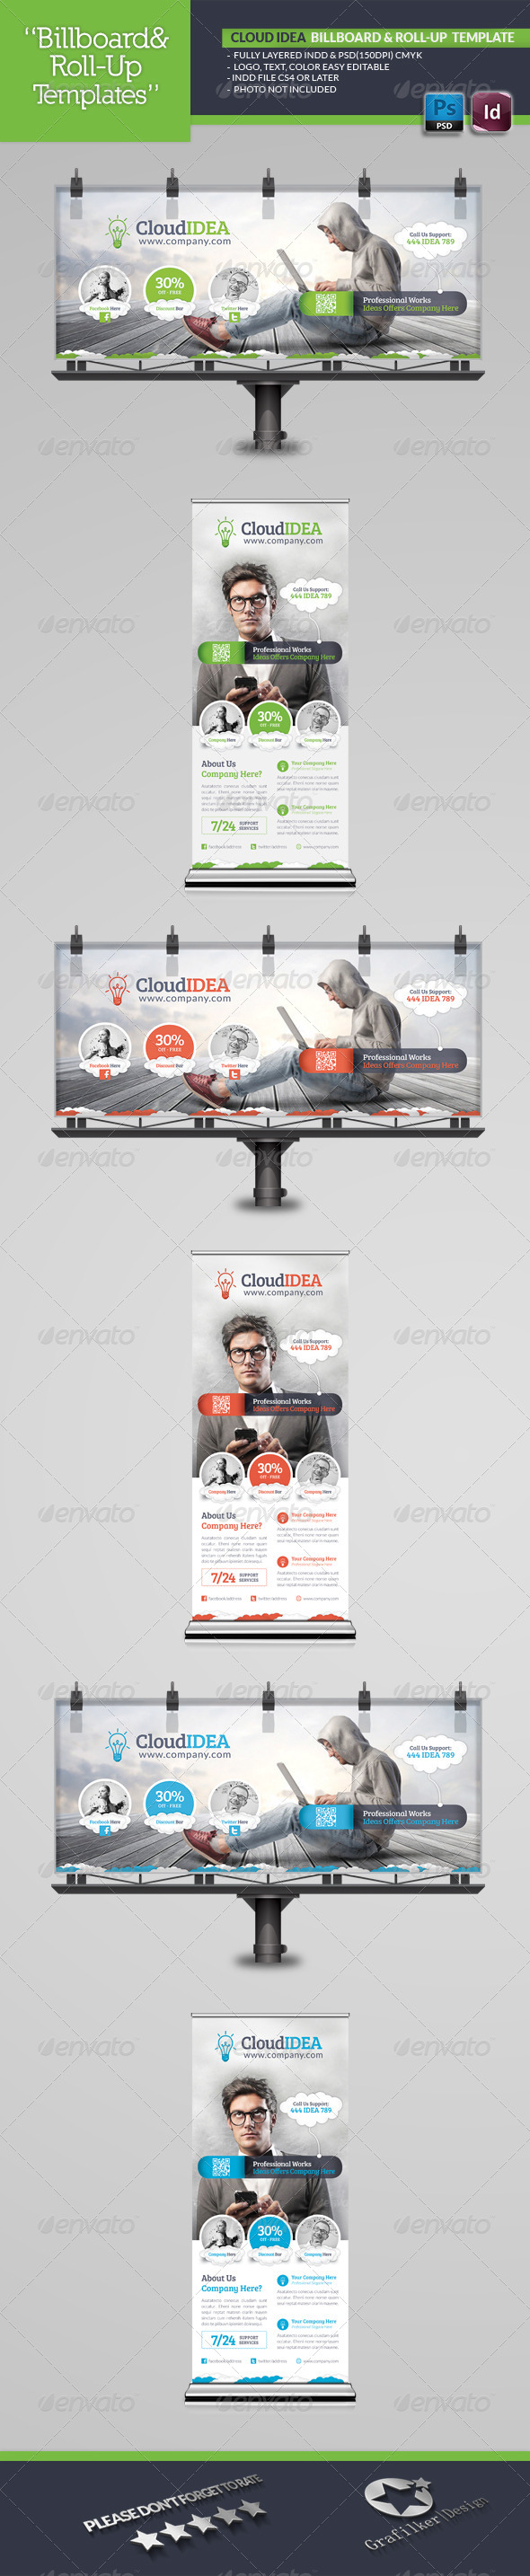 Cloud Idea Billboard & Roll-Up Template - Signage Print Templates